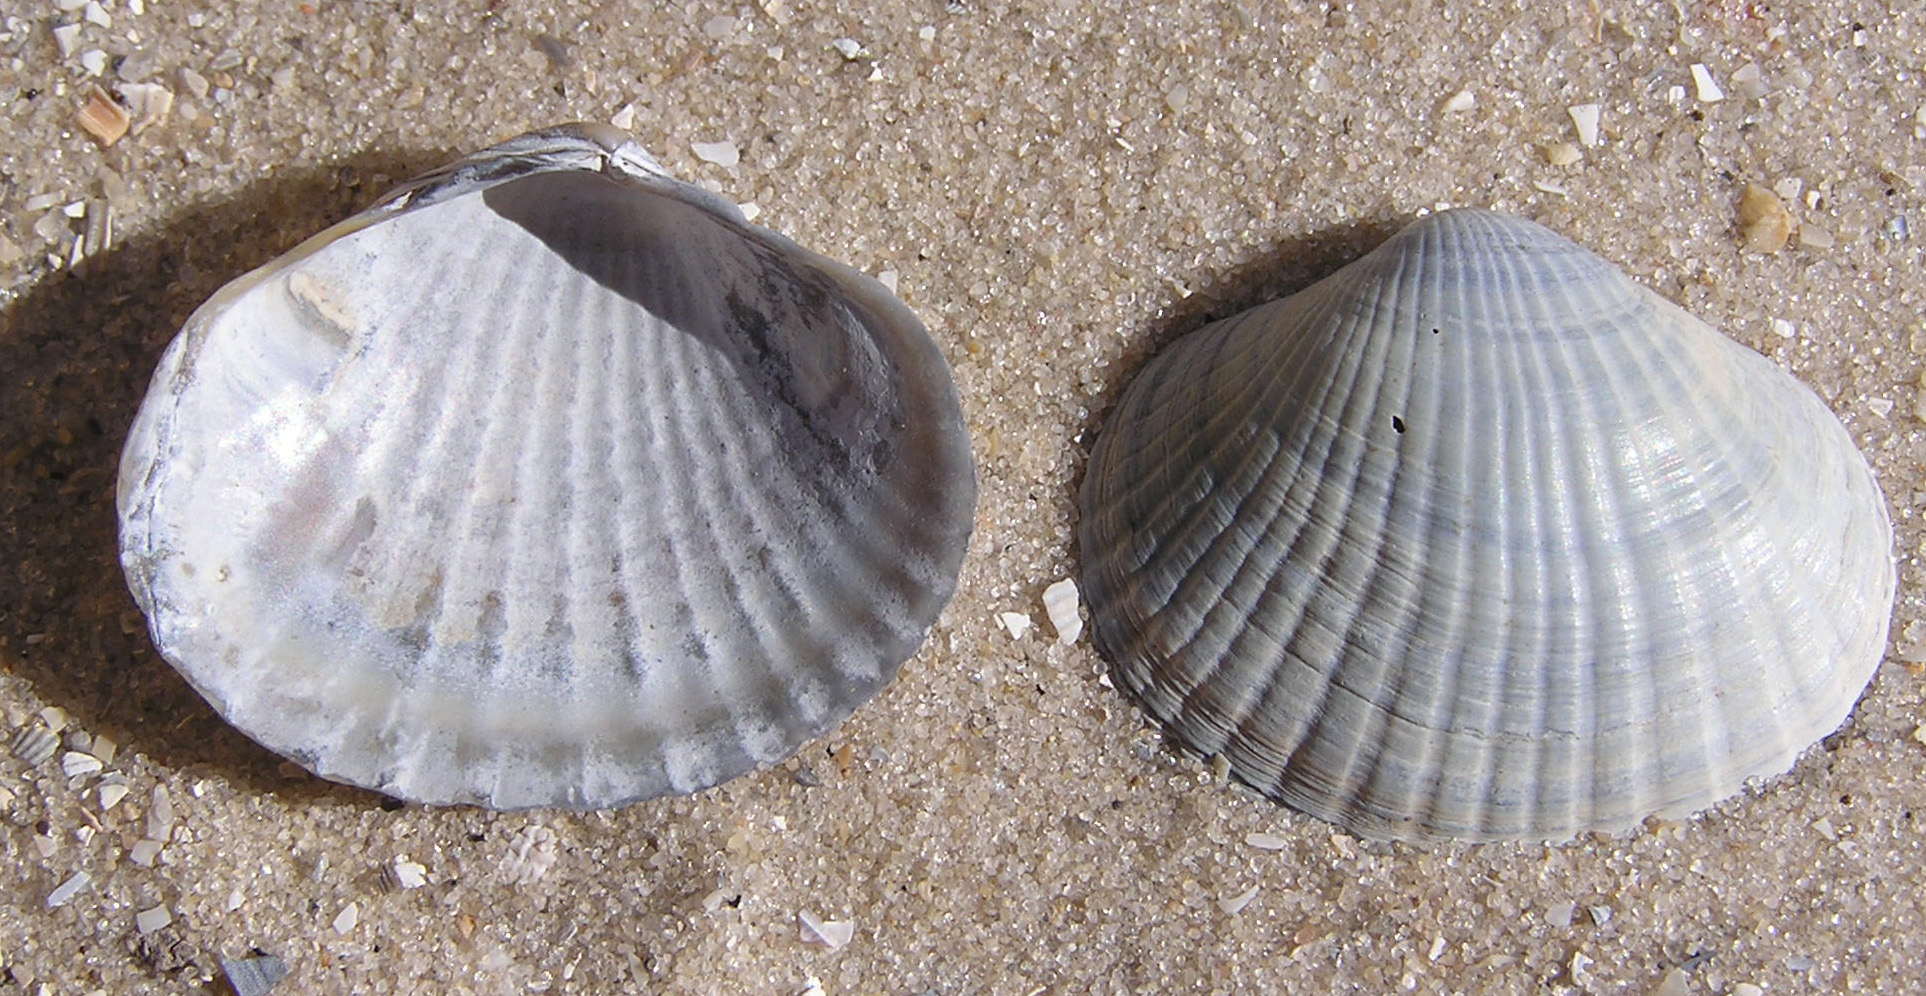 mollusk dating Molluska the phylum molluska is one of the largest of all animal groups not only does it contain about 110,000 living species, the f ossil record indicates a long and extensive history.